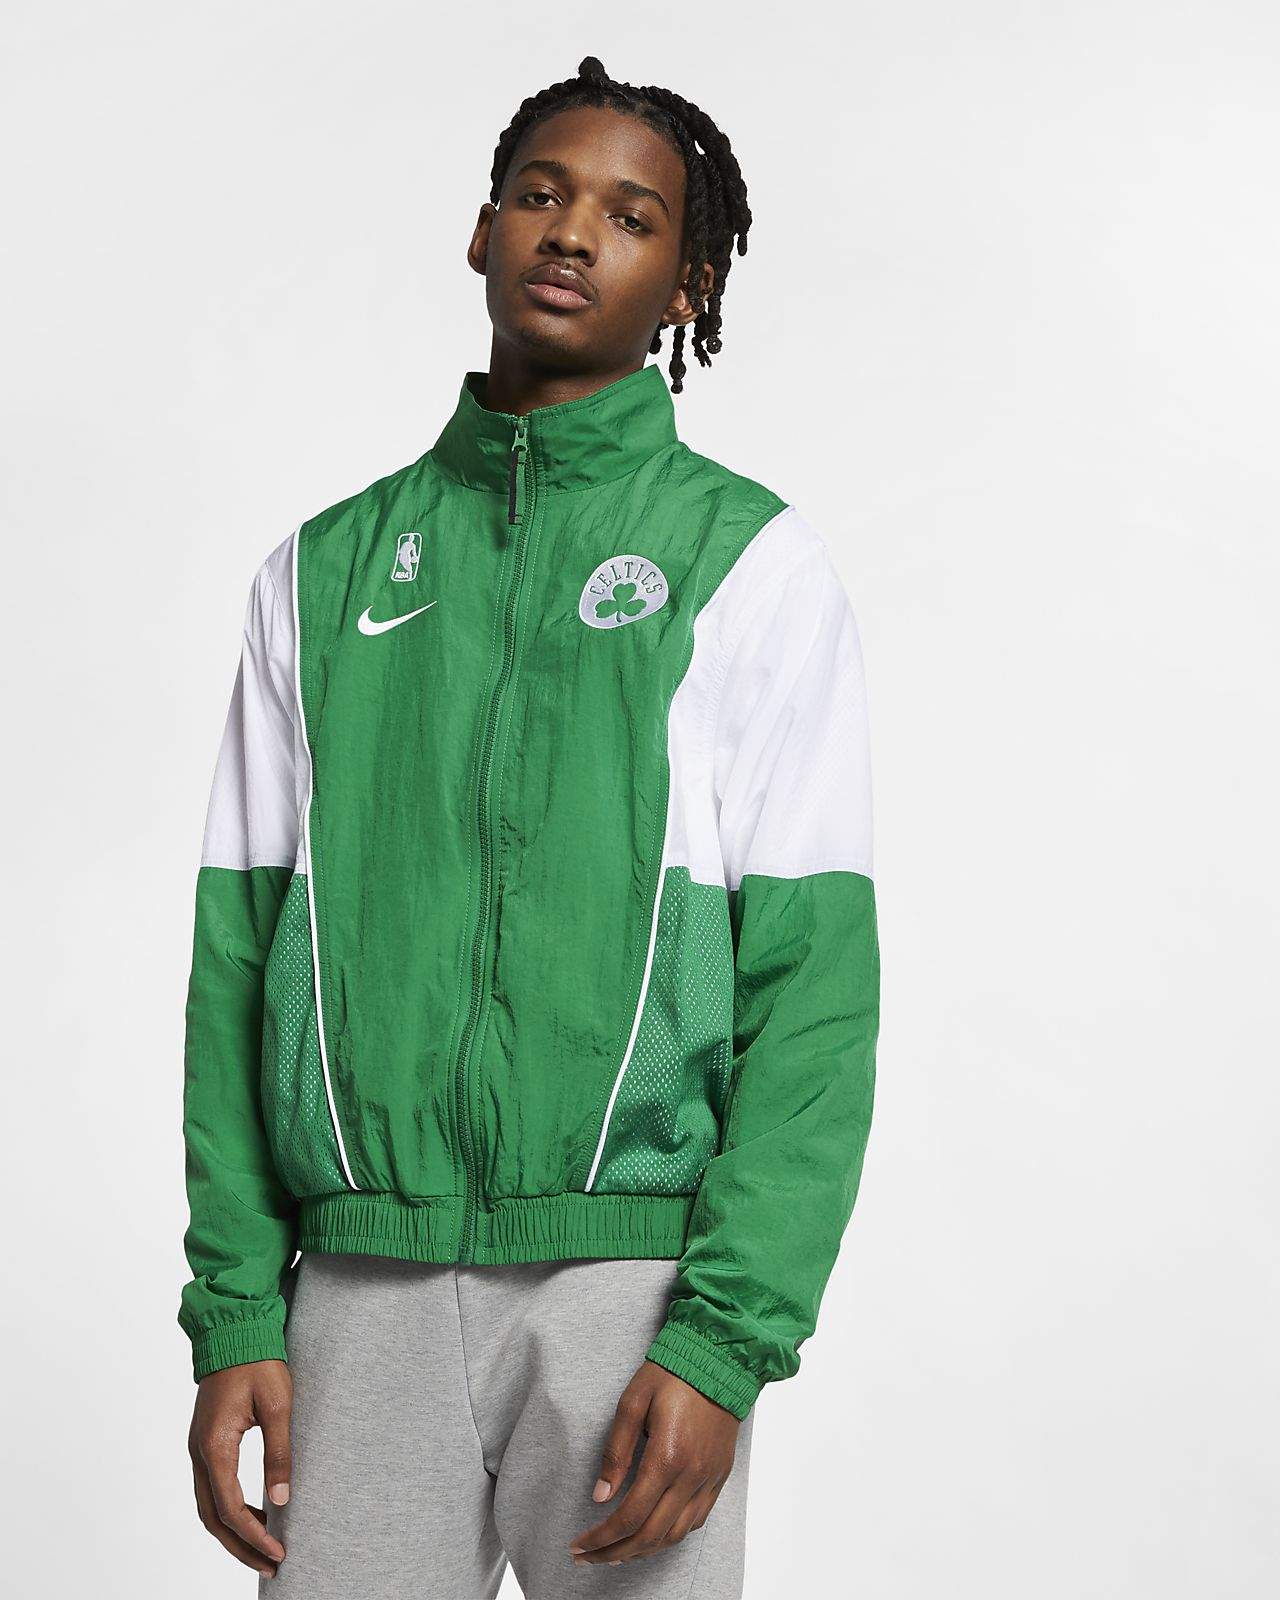 Boston Celtics Nike Courtside Men's NBA Tracksuit Jacket